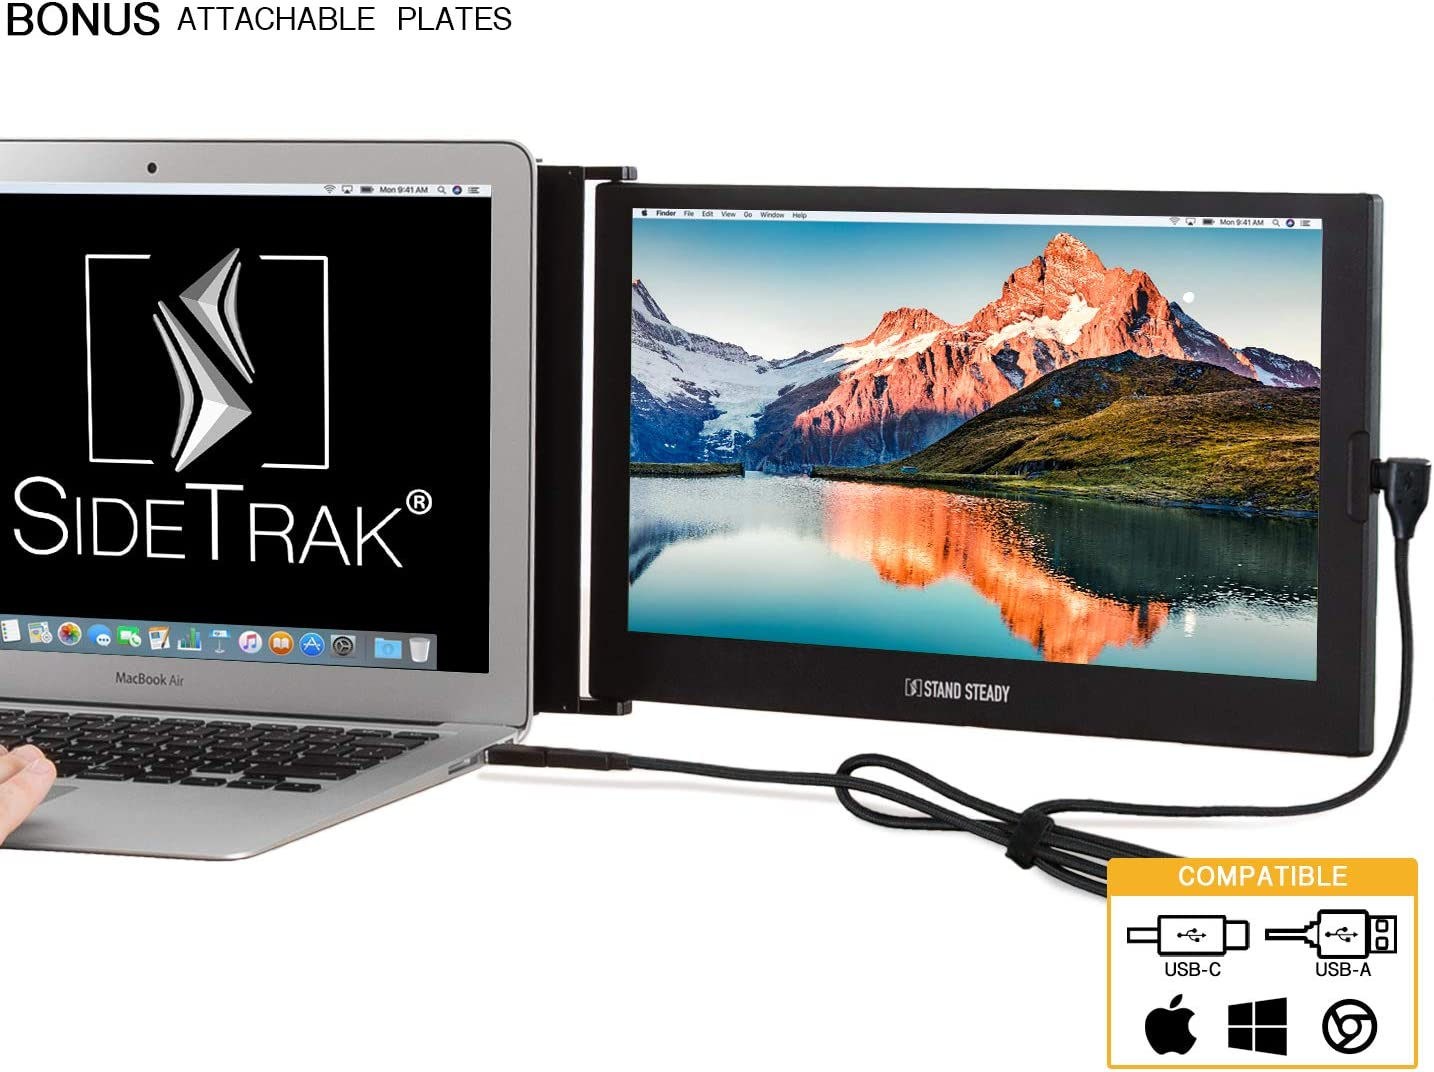 """SideTrak Portable USB Monitor 12.5"""" Screen + Extra Metal Plates - Attaches to Your Laptop for Easy Work from Home - USB Power - Fits Mac and PC 13""""-17"""" Laptops - Full HD IPS Display (Patent Pending)"""